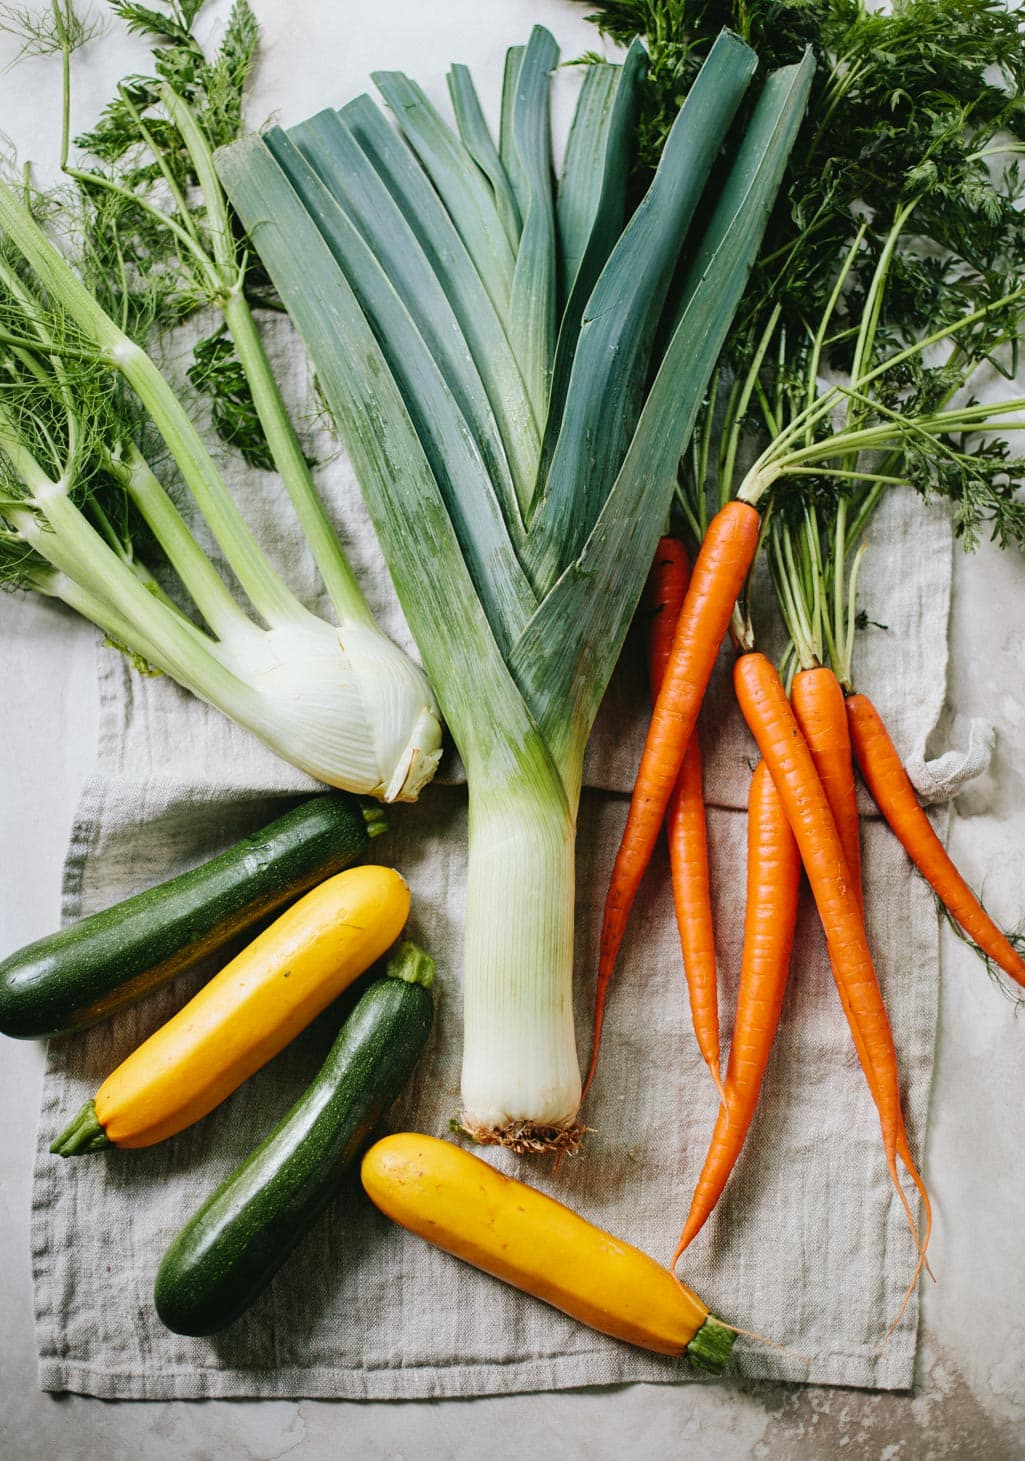 Fresh summer produce on a linen napkin, showing a bunch of leeks, carrots, fennel bulb and green and yellow summer squash.